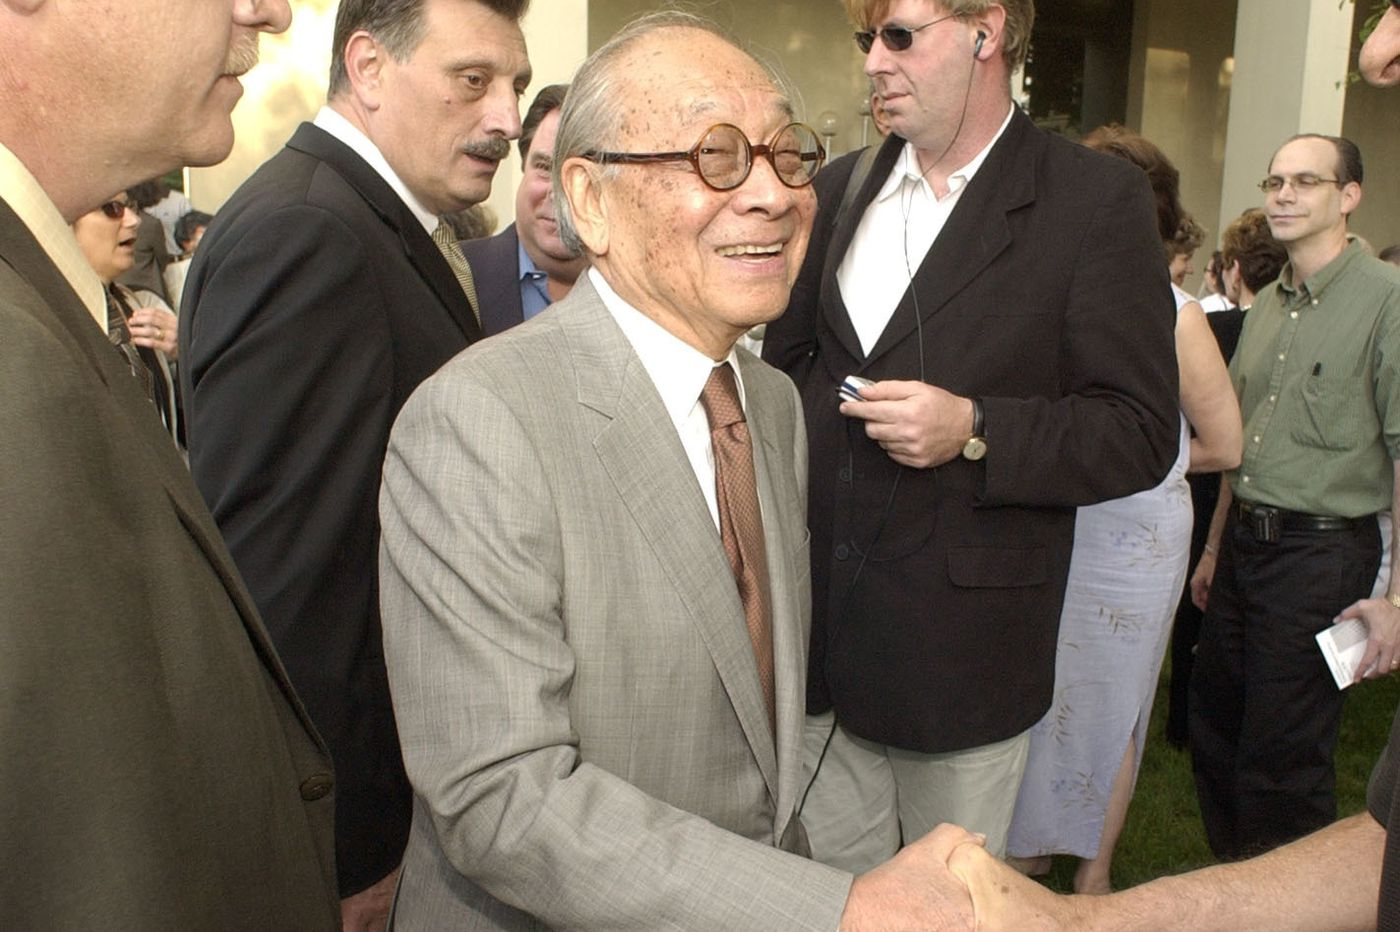 I.M. Pei, architect who designed Louvre's pyramid and Philly's Society Hill Towers, dies at 102